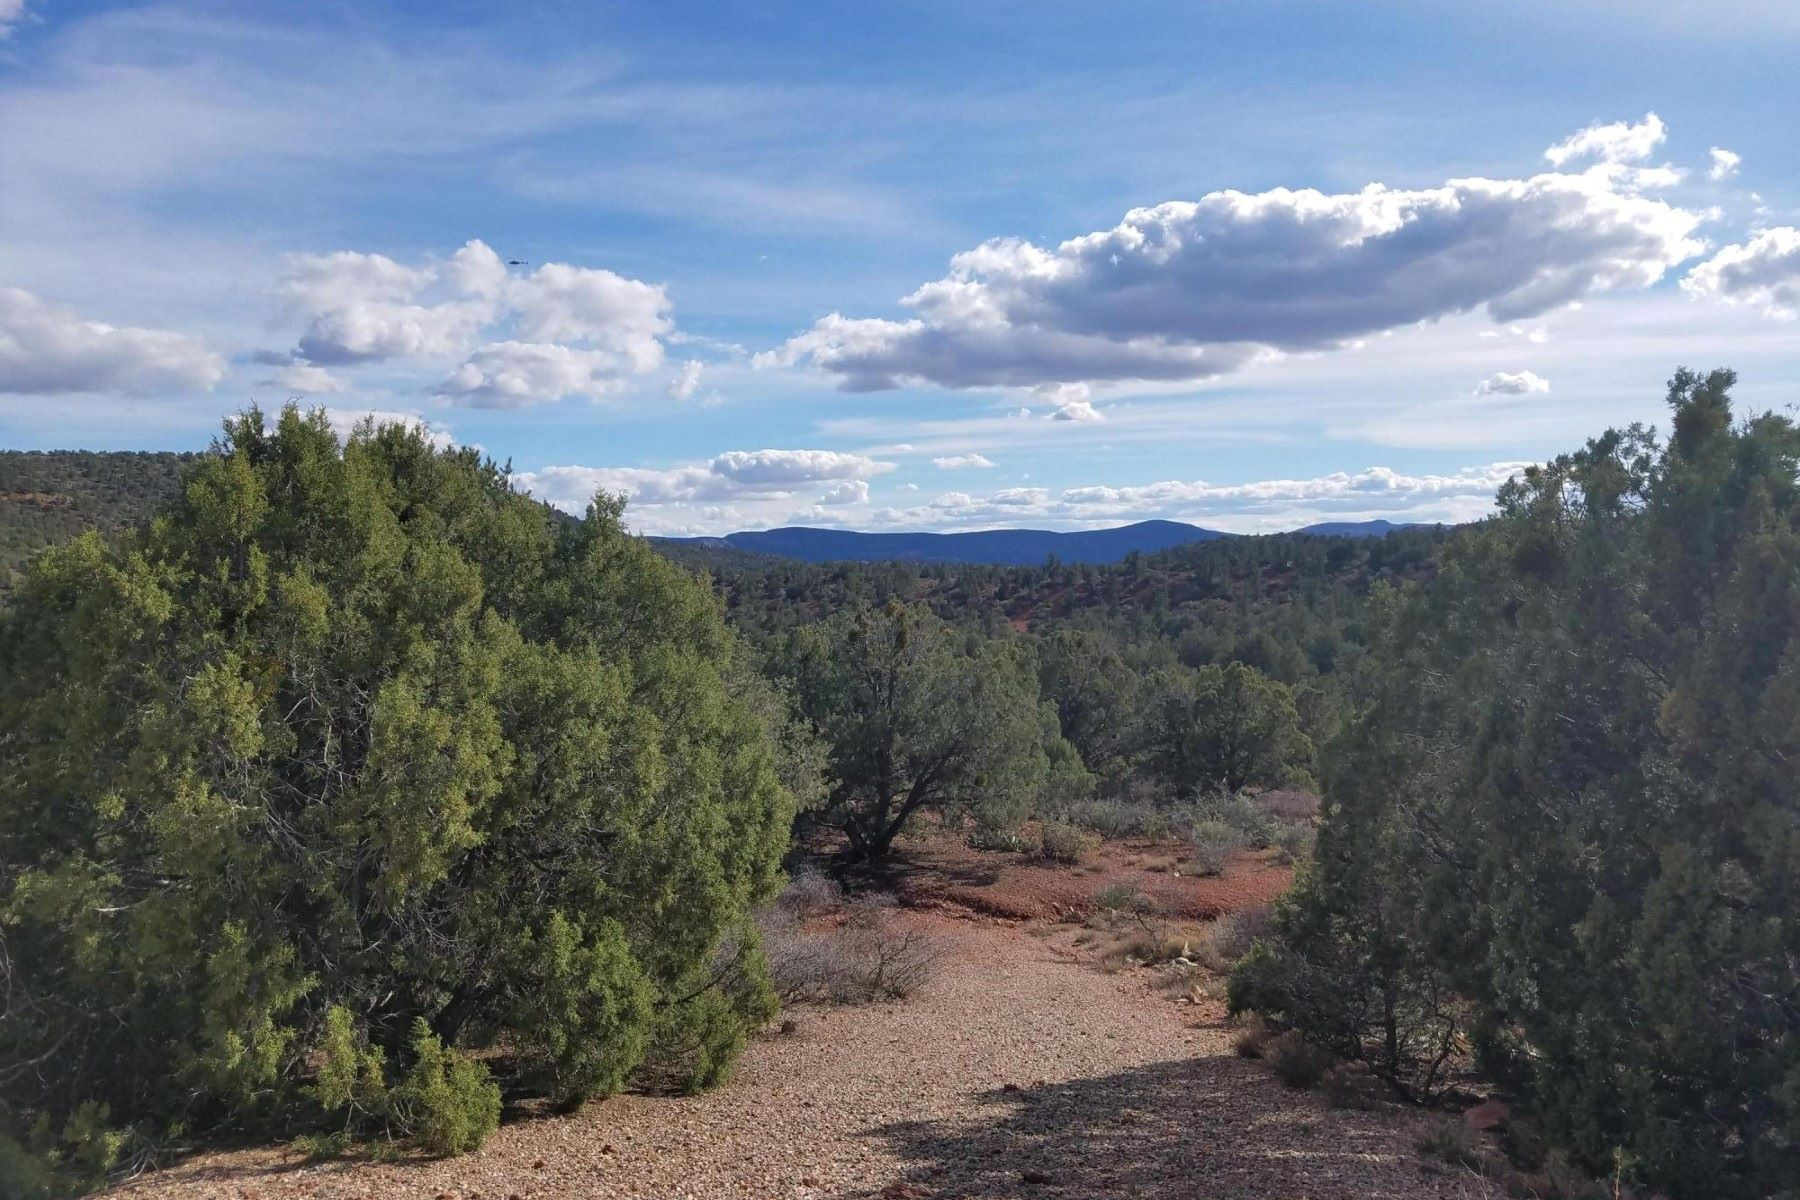 Land for Sale at Centrally Located West Sedona Parcel 2375 Stanley Steamer Drive, Sedona, Arizona, 86336 United States